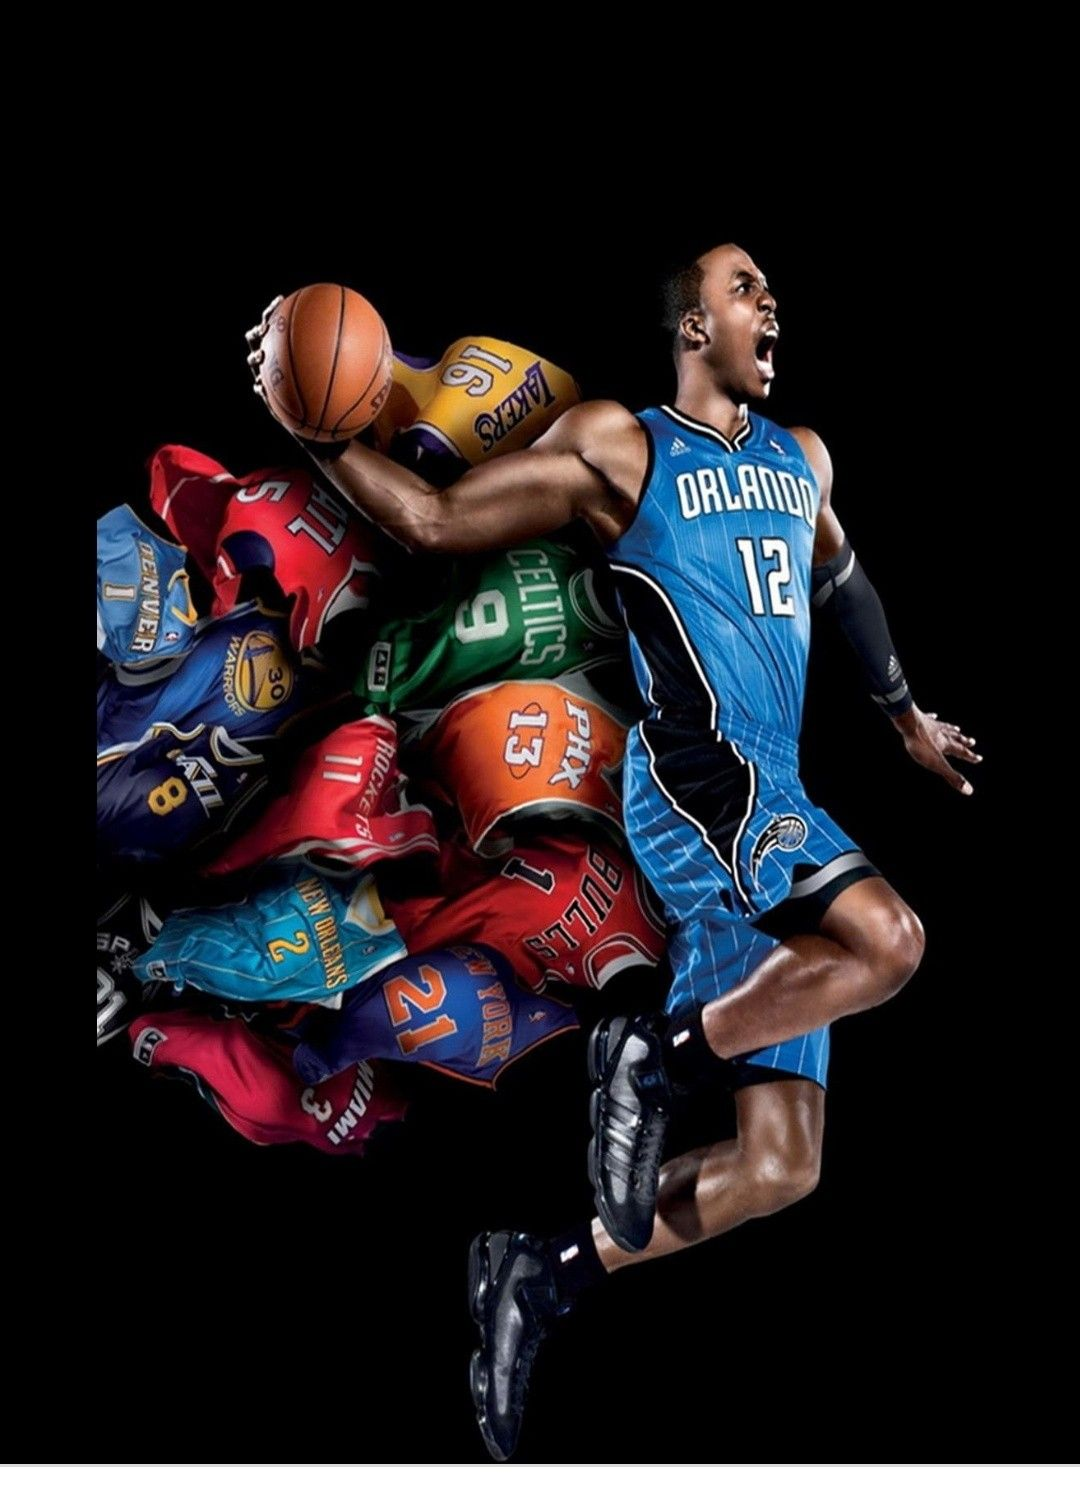 Pin By Legend 3034 On G O A T In 2020 Basketball Iphone Wallpaper Cool Basketball Pictures Nba Wallpapers